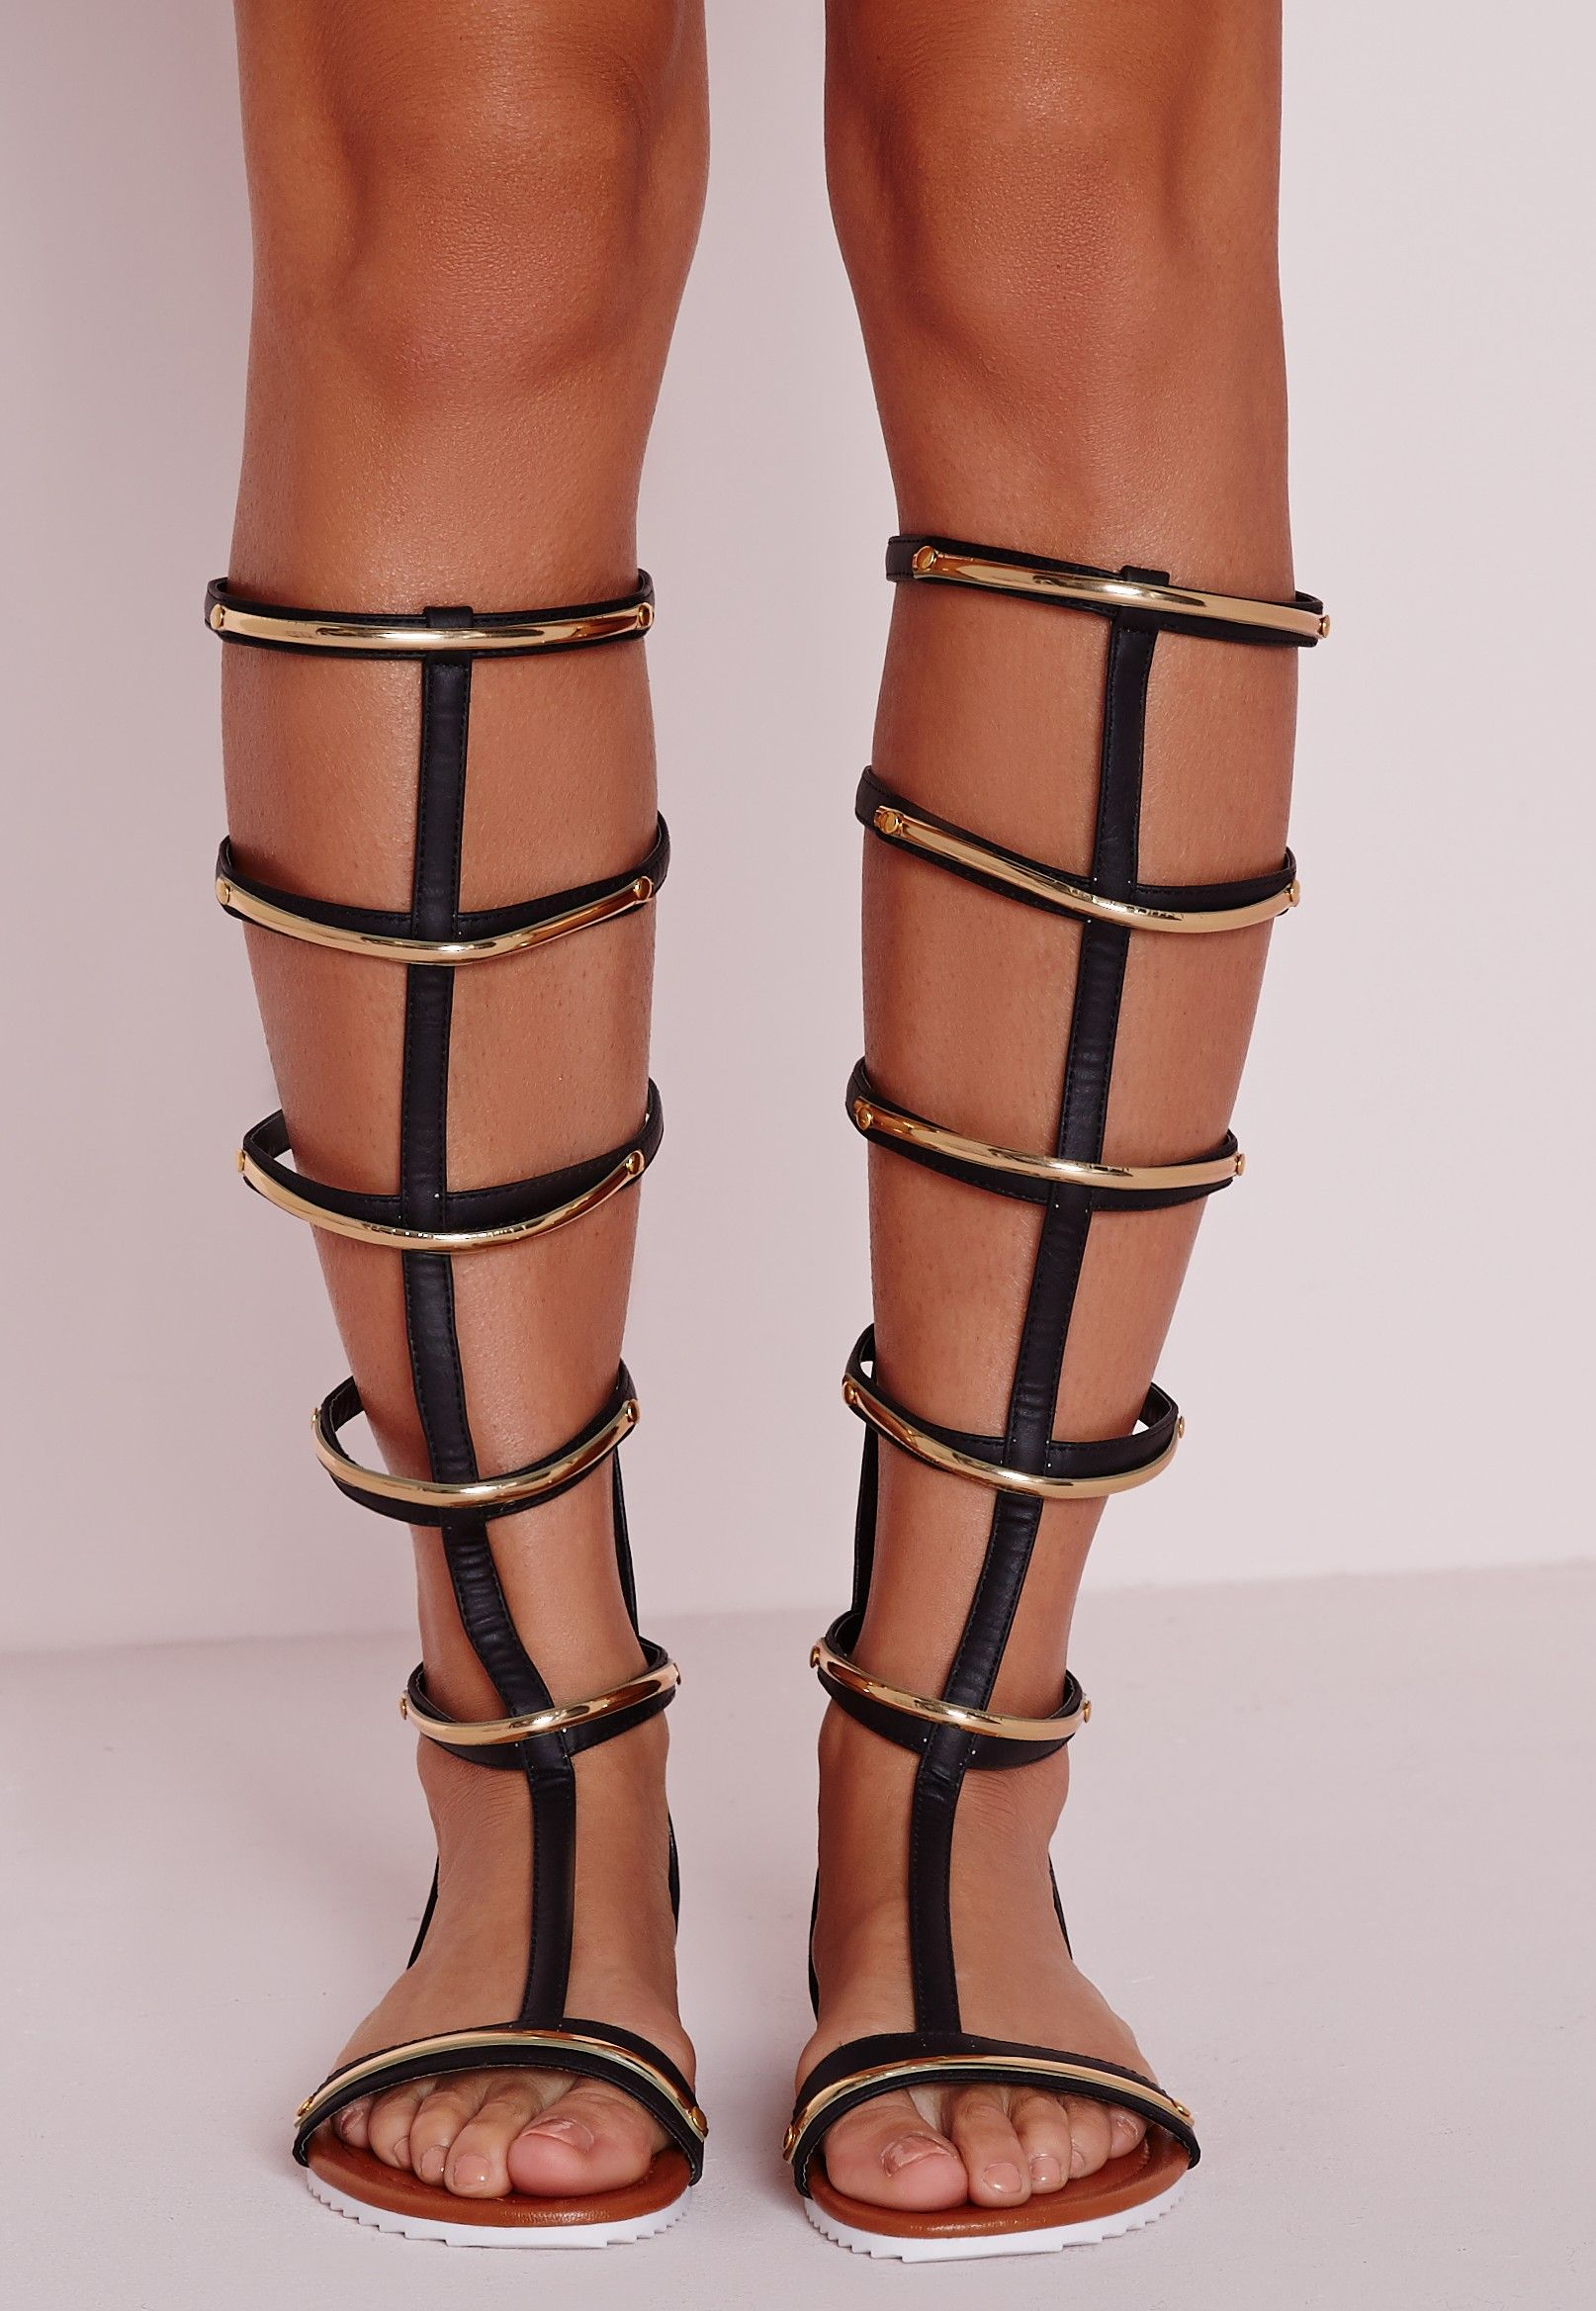 afb3bb9ad11f2a Chanel your inner Greek goddess in these fierce gladiator sandals. In a  black faux leather with gold trim bars these knee high beauts are hot  property.